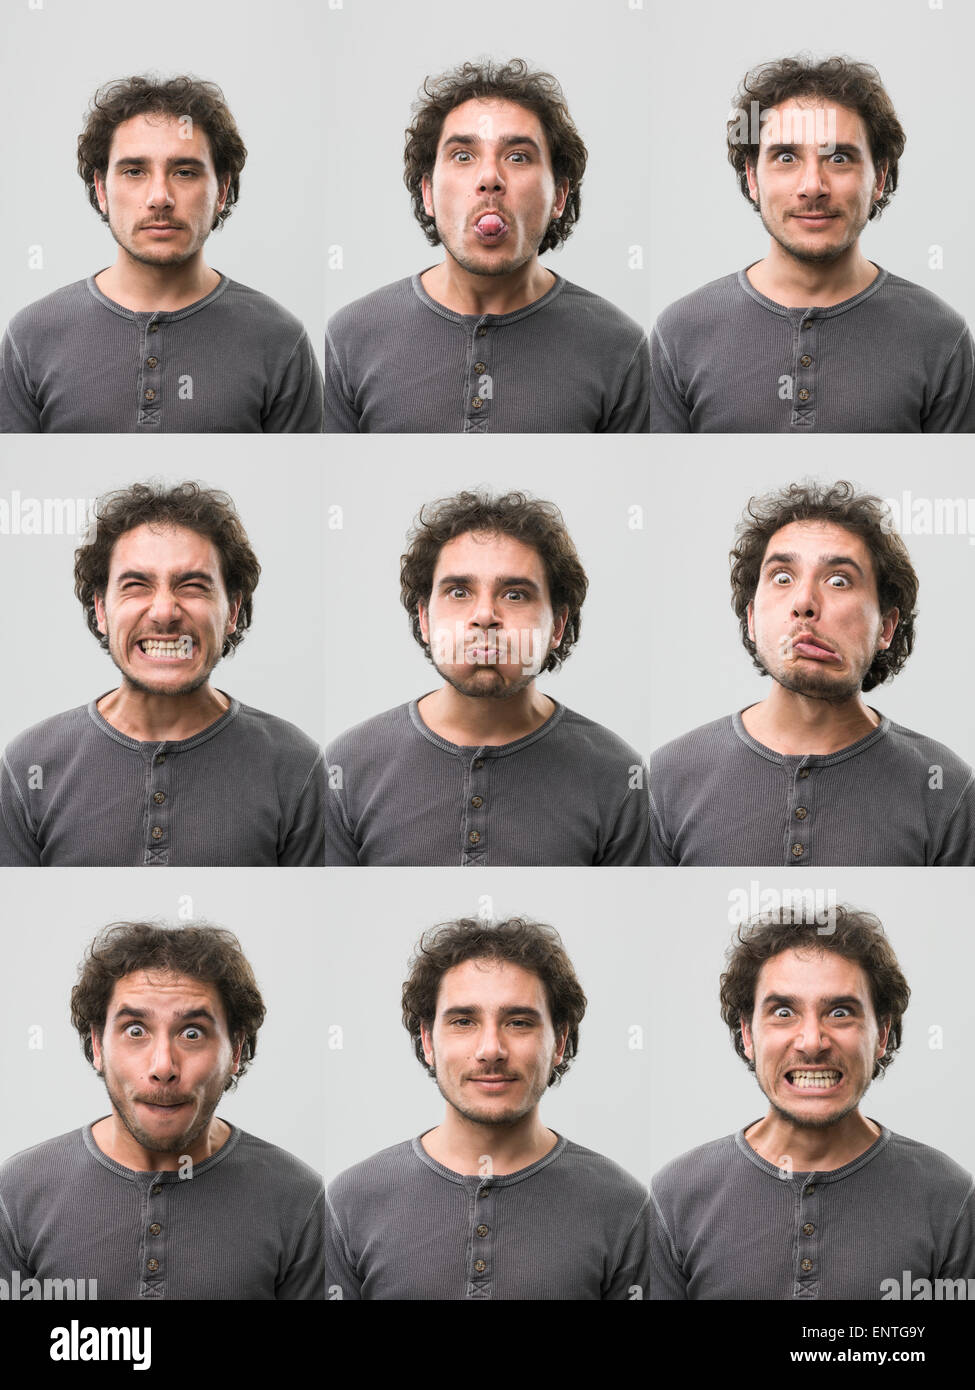 young man with different facial expressions. digital composite image - Stock Image